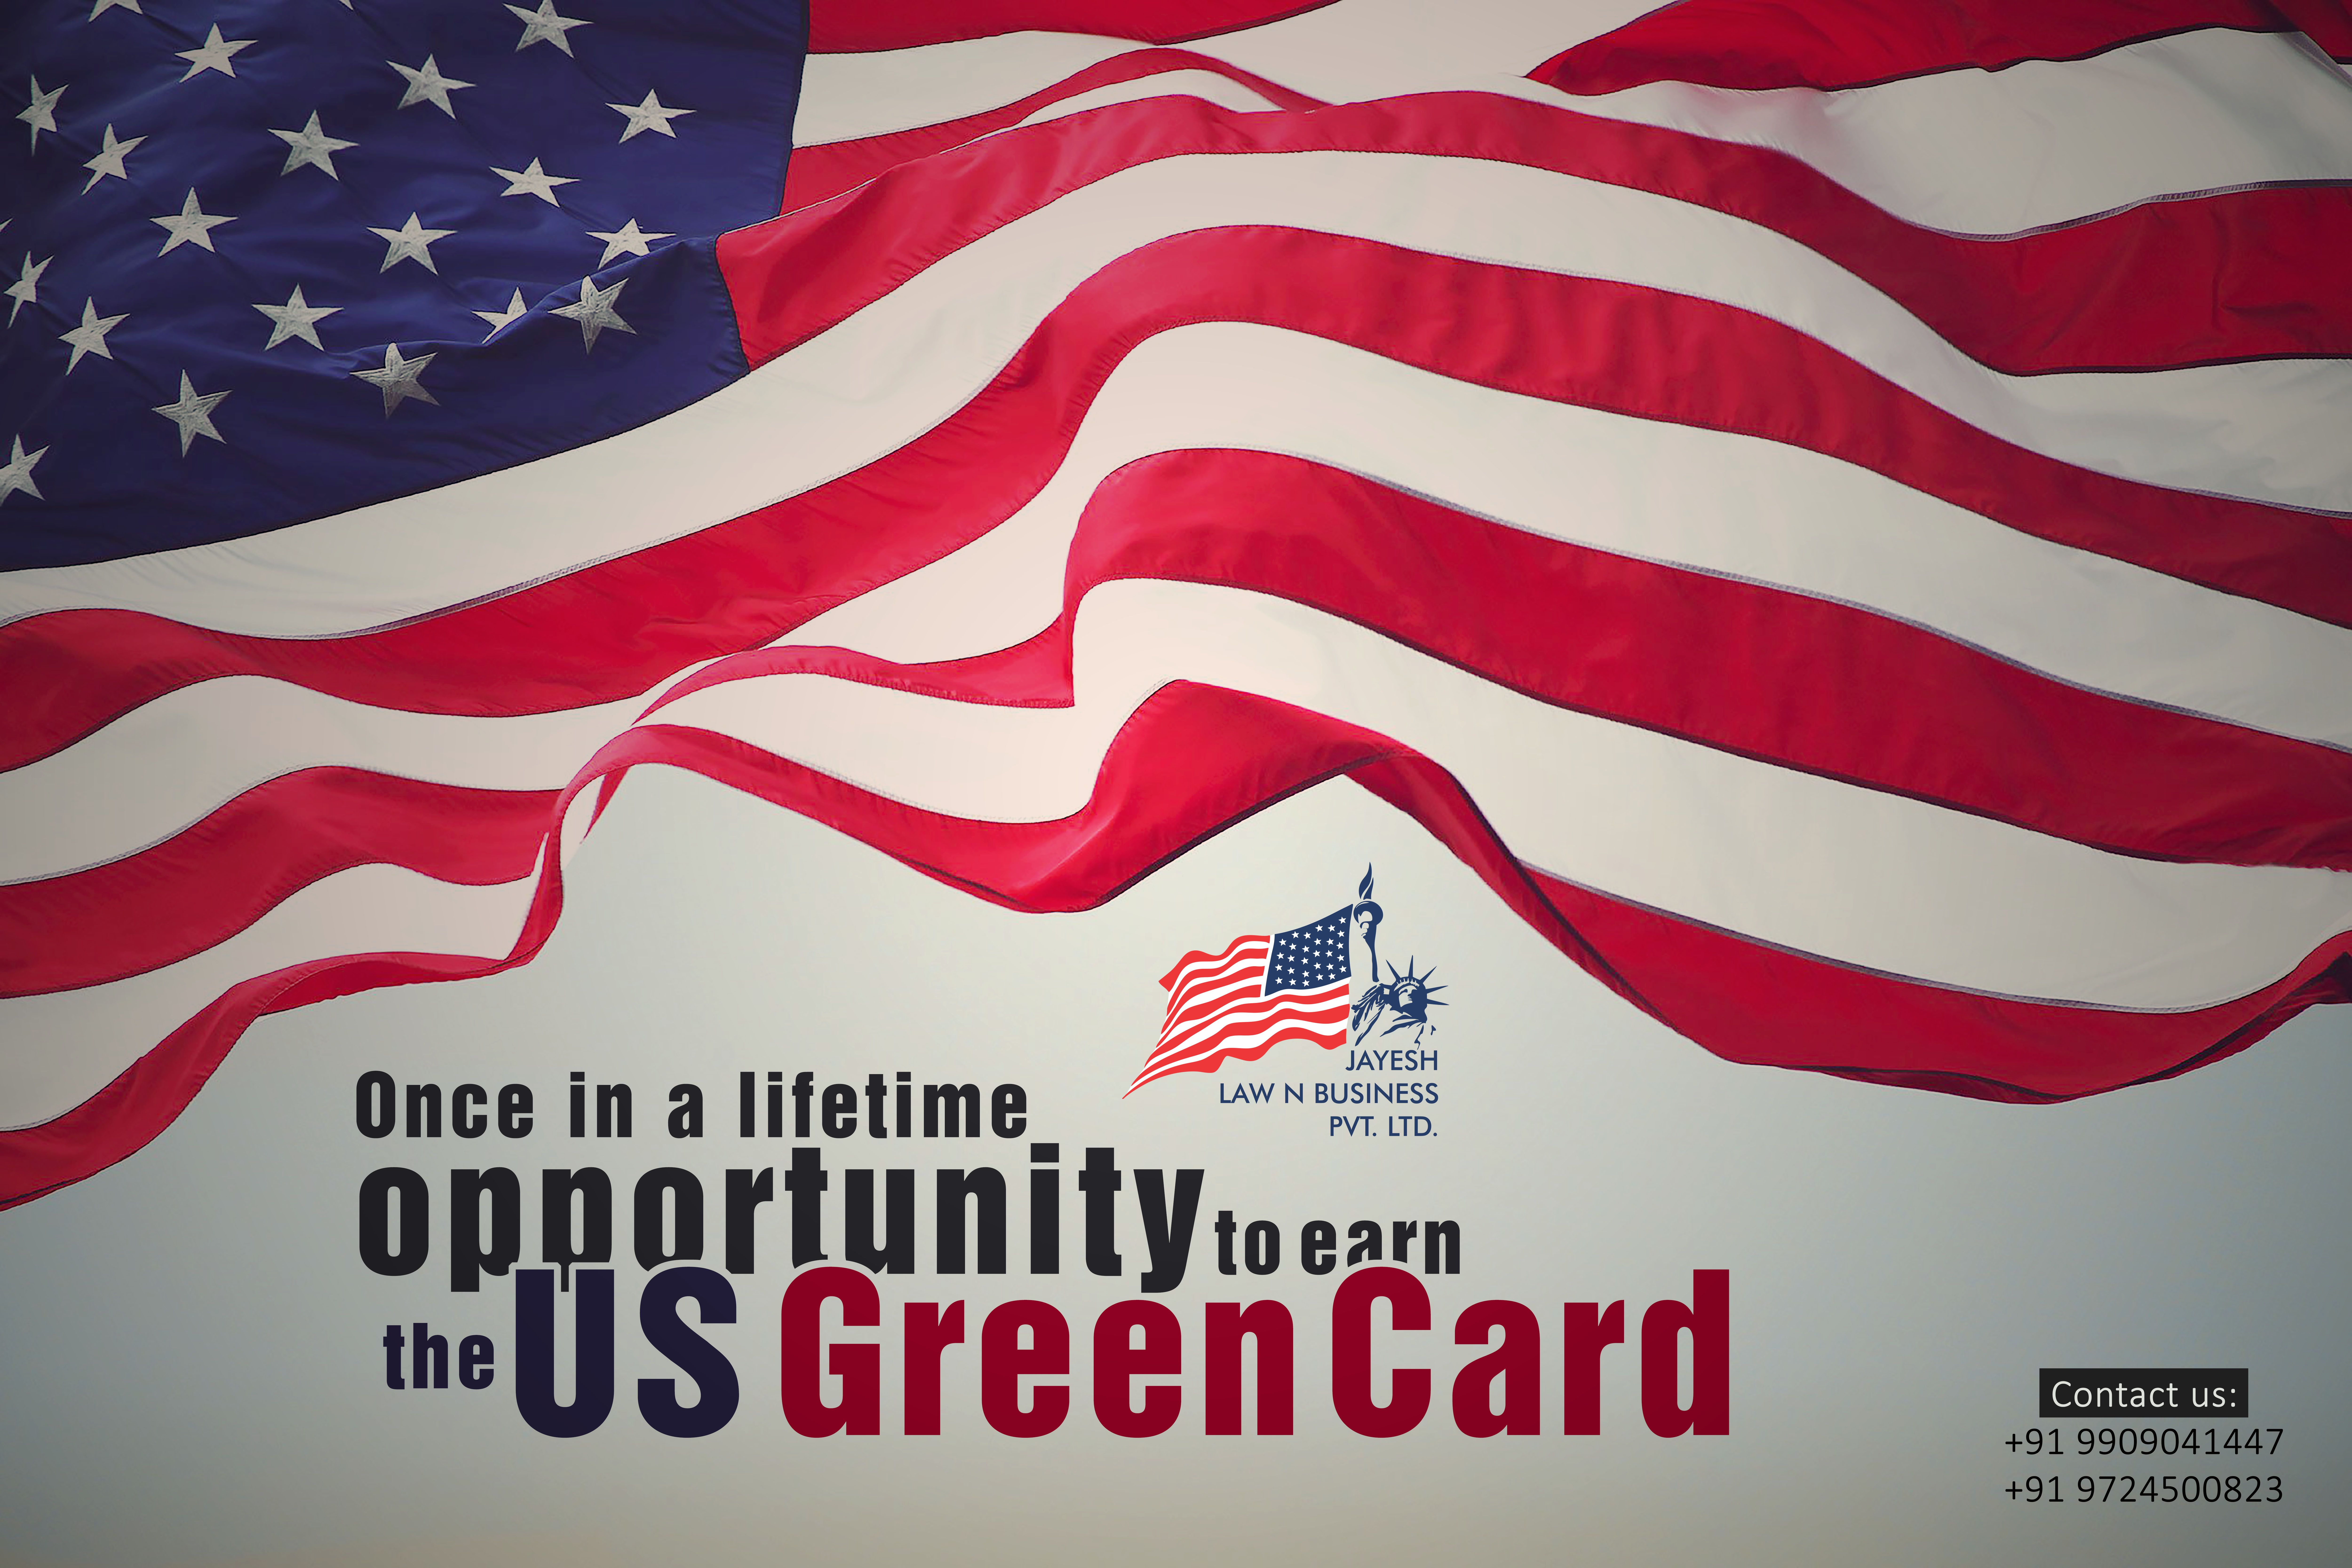 Once in a lifetime opportunity to earn the us greencard